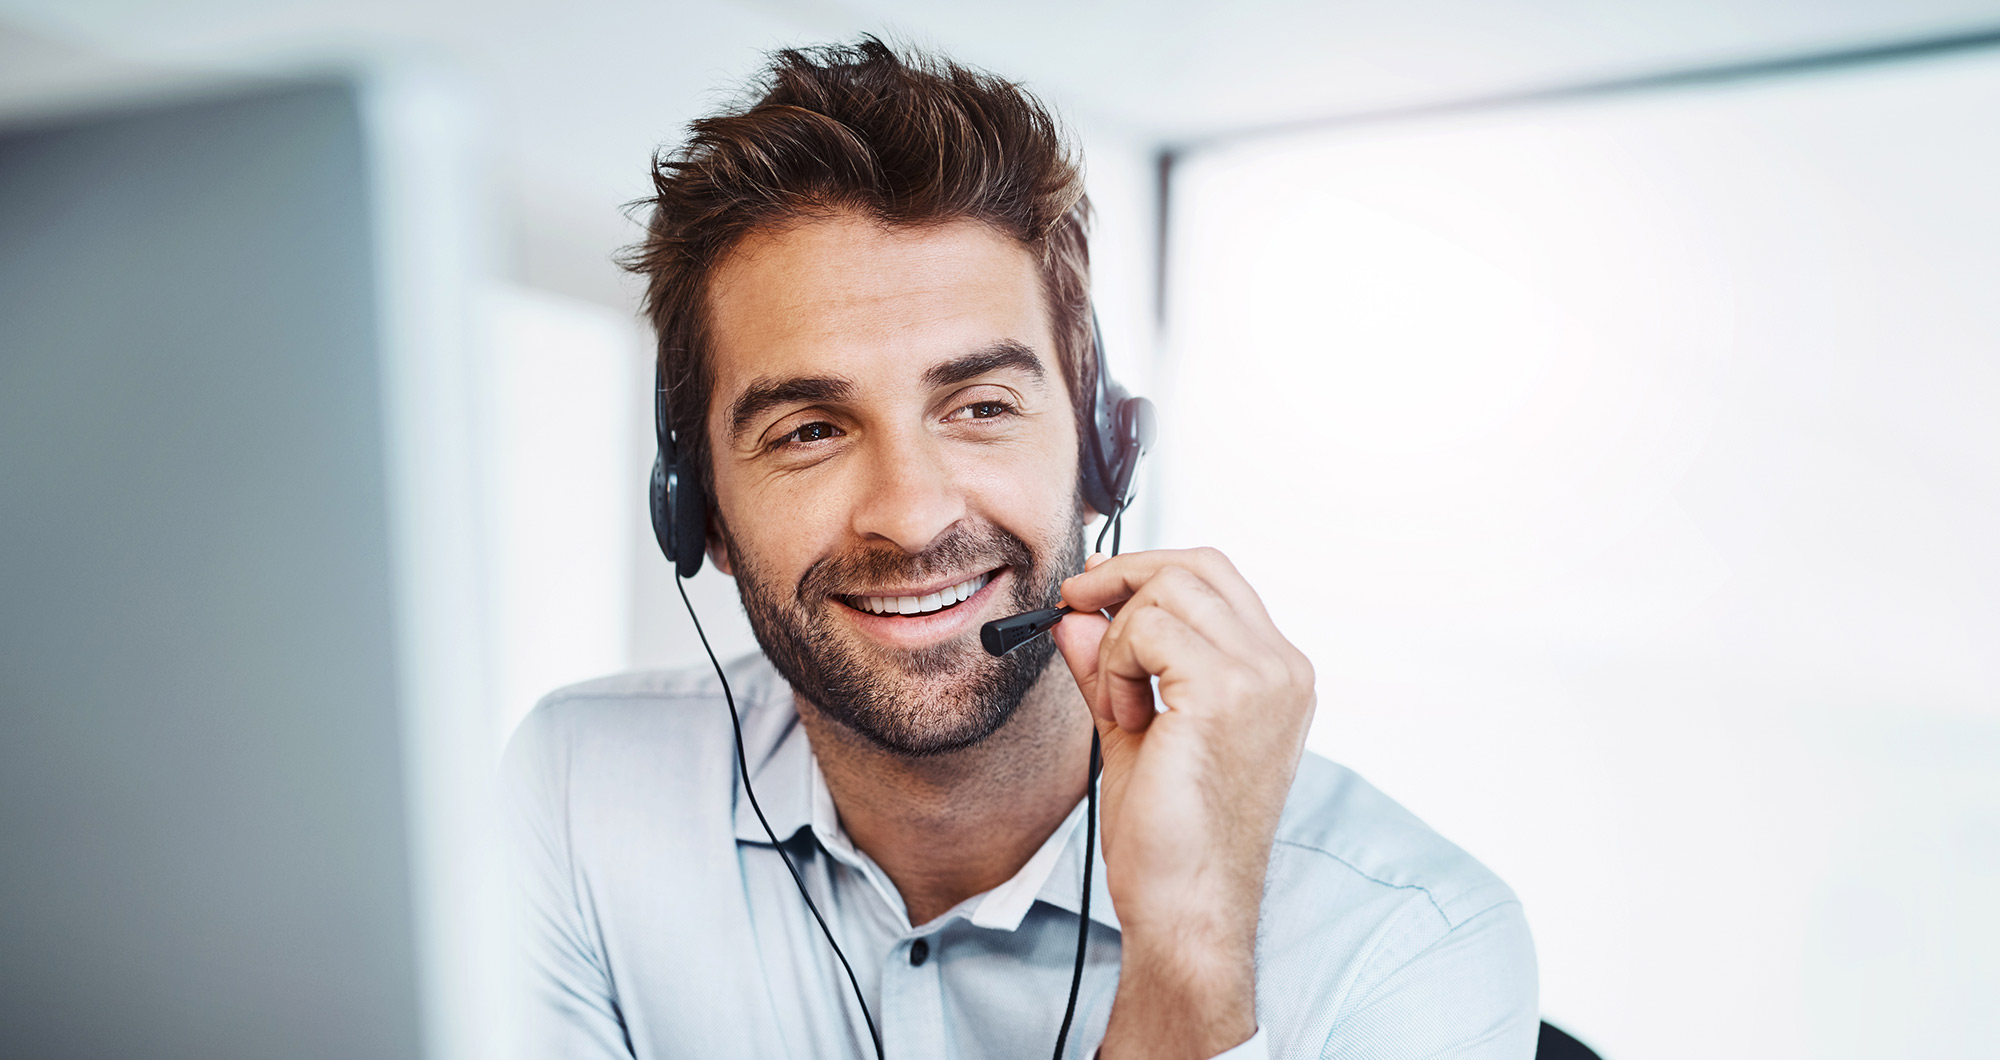 Operator Call Center Slider 1